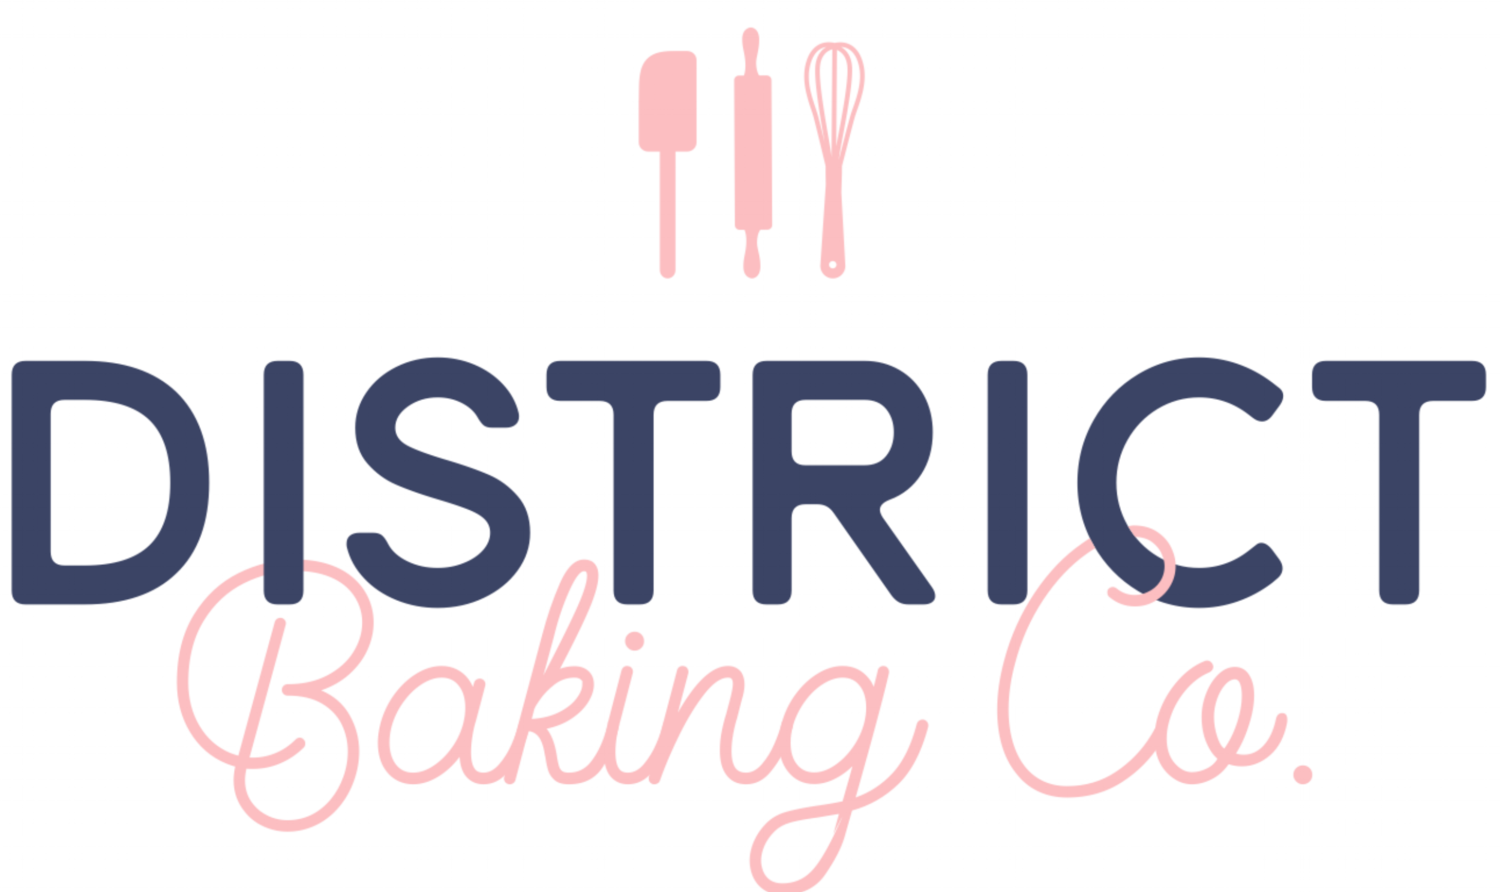 District Baking Co.